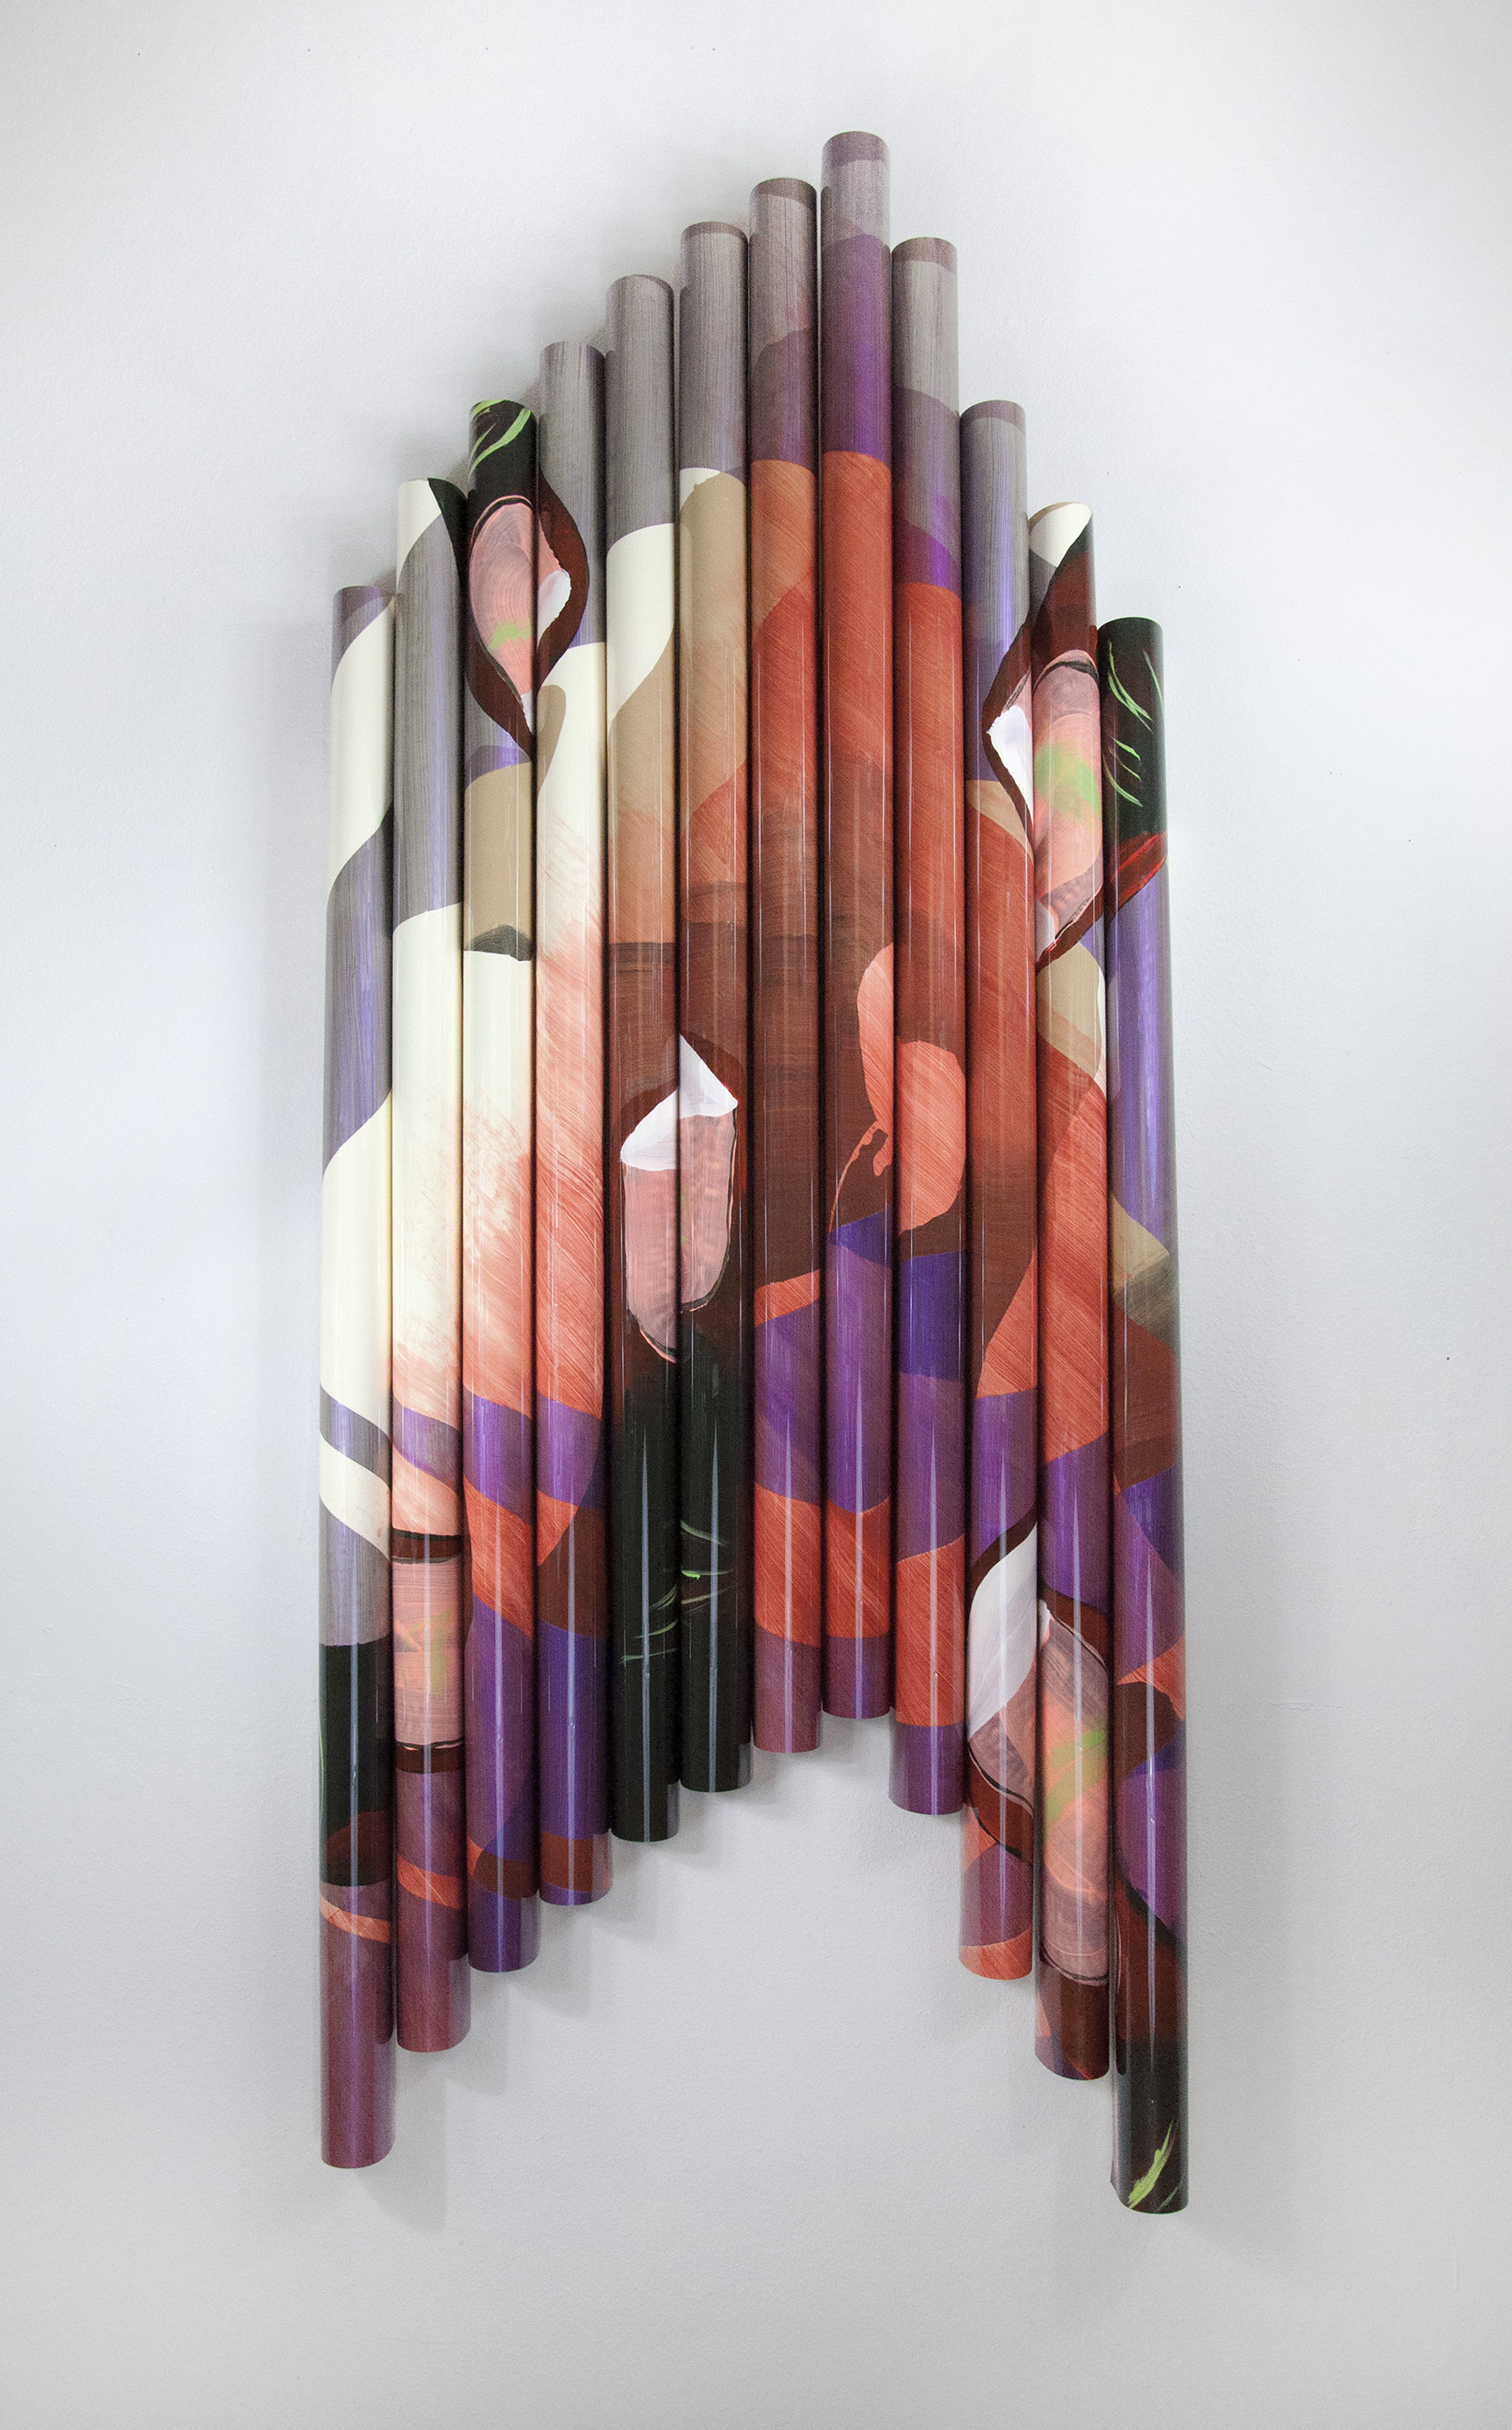 Archive (nail bitter) , acetate, acrylic paint, matte medium, wood, 76 x 32 x 6 inches,2016